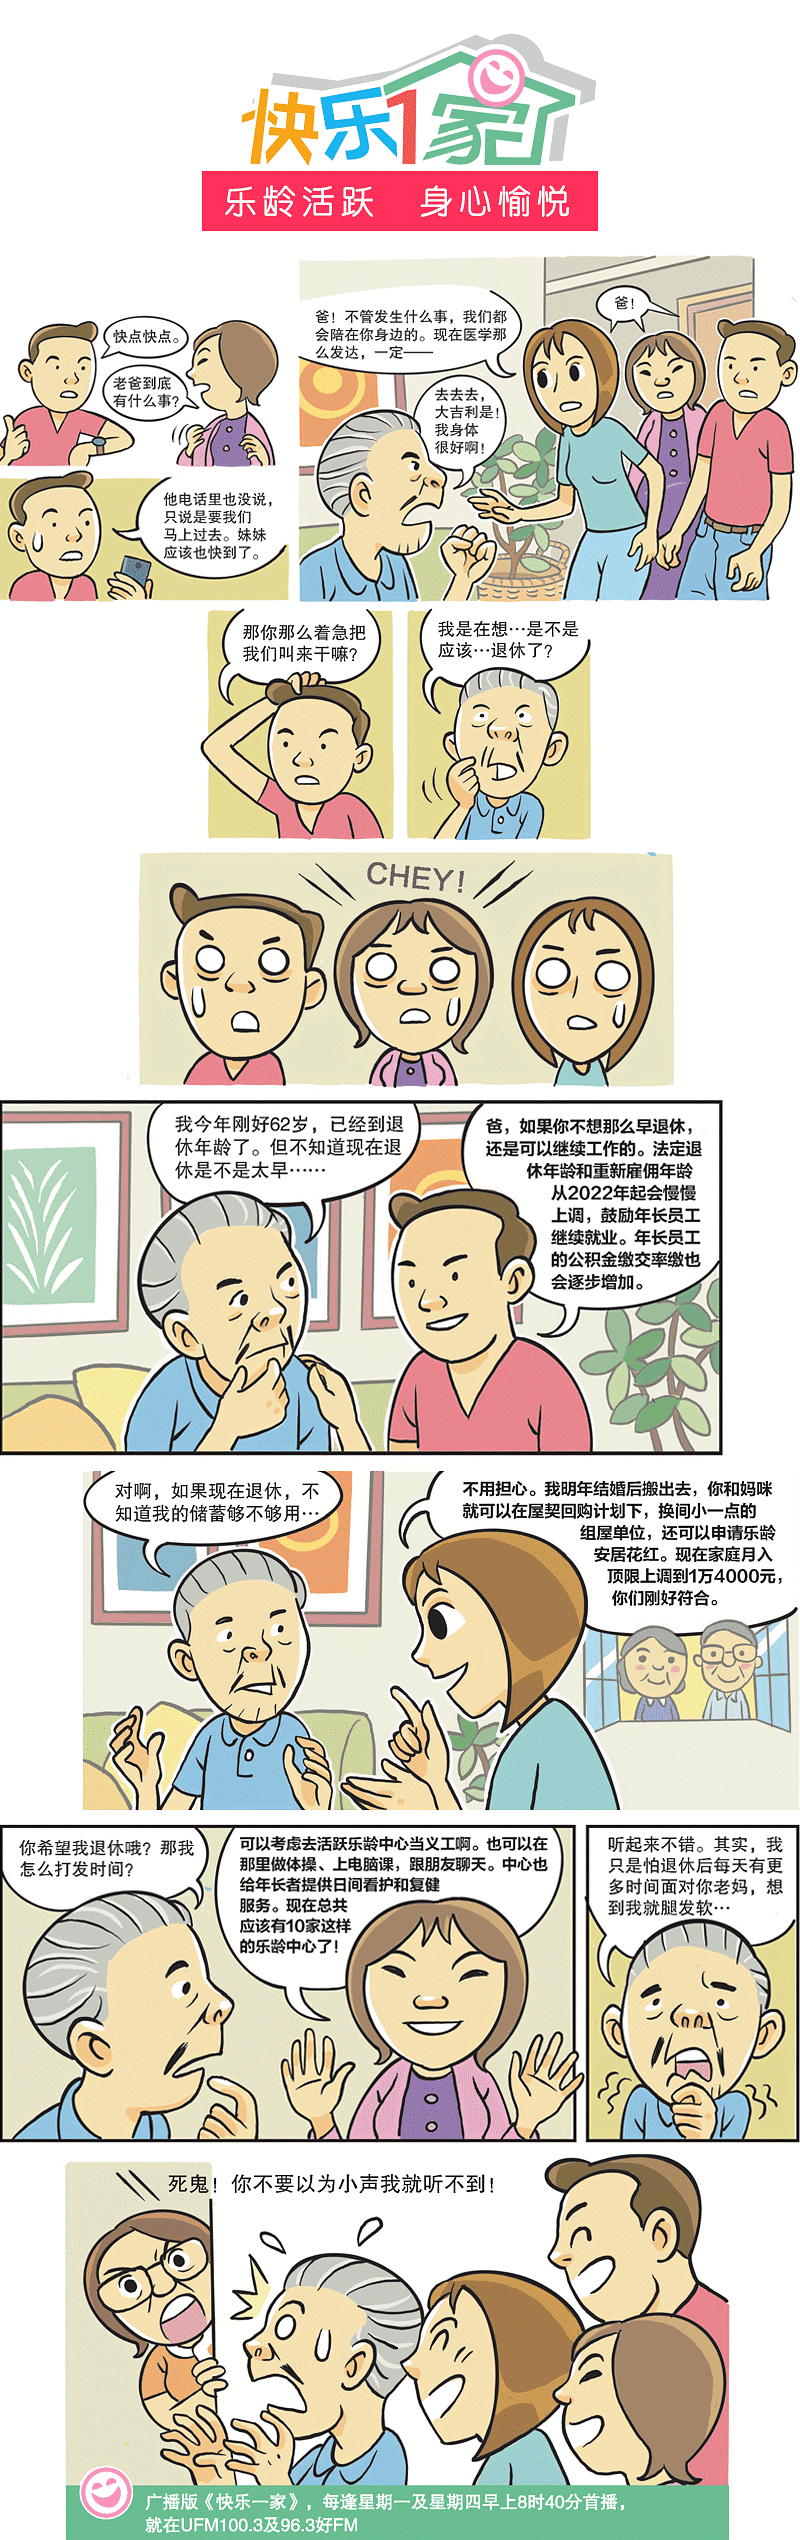 Happy Family Series Active Ageing